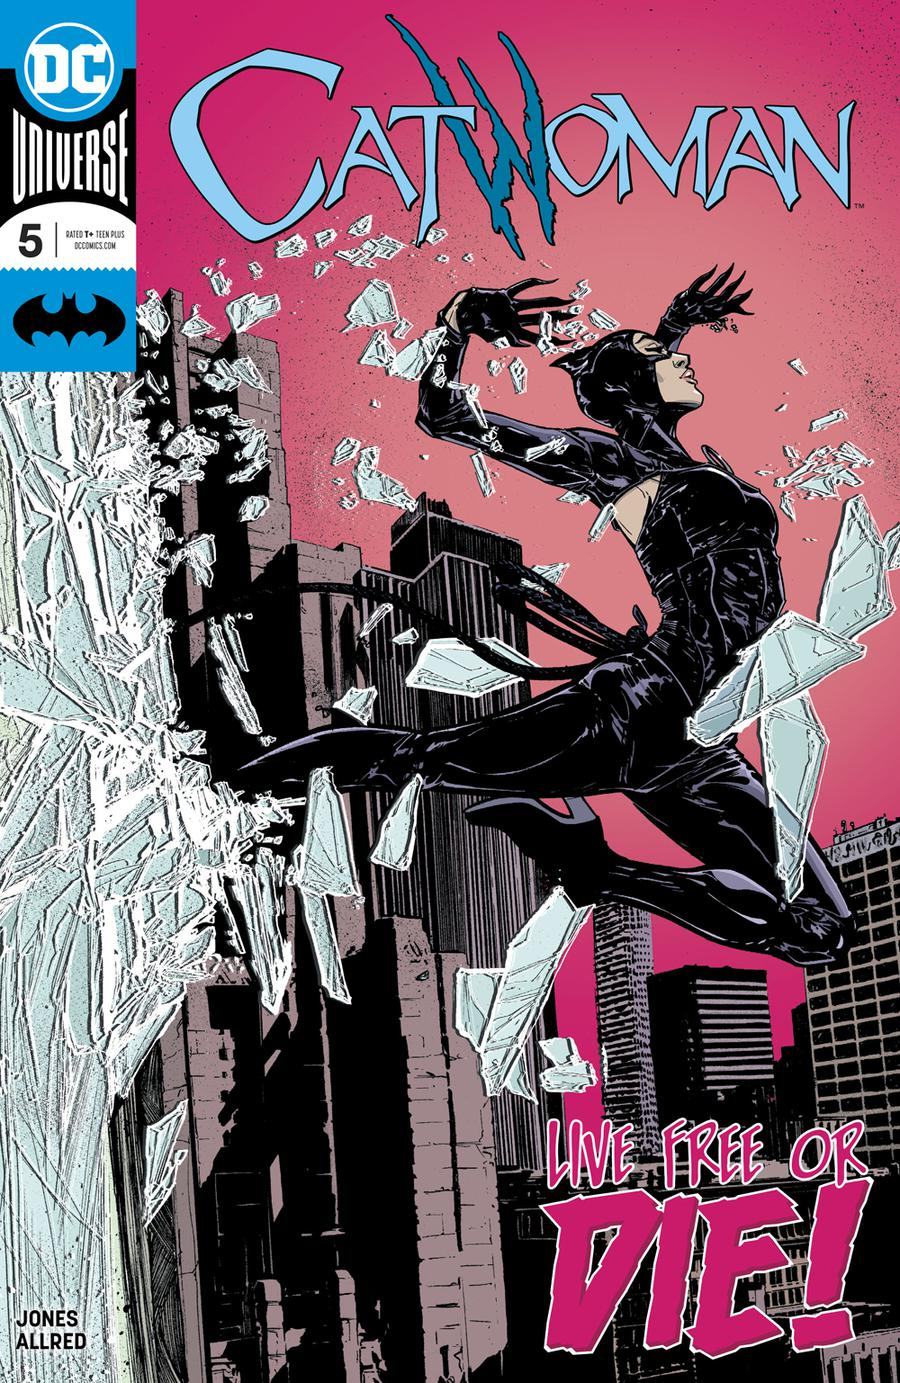 Catwoman Vol 5 #5 Cover A Regular Joelle Jones Cover